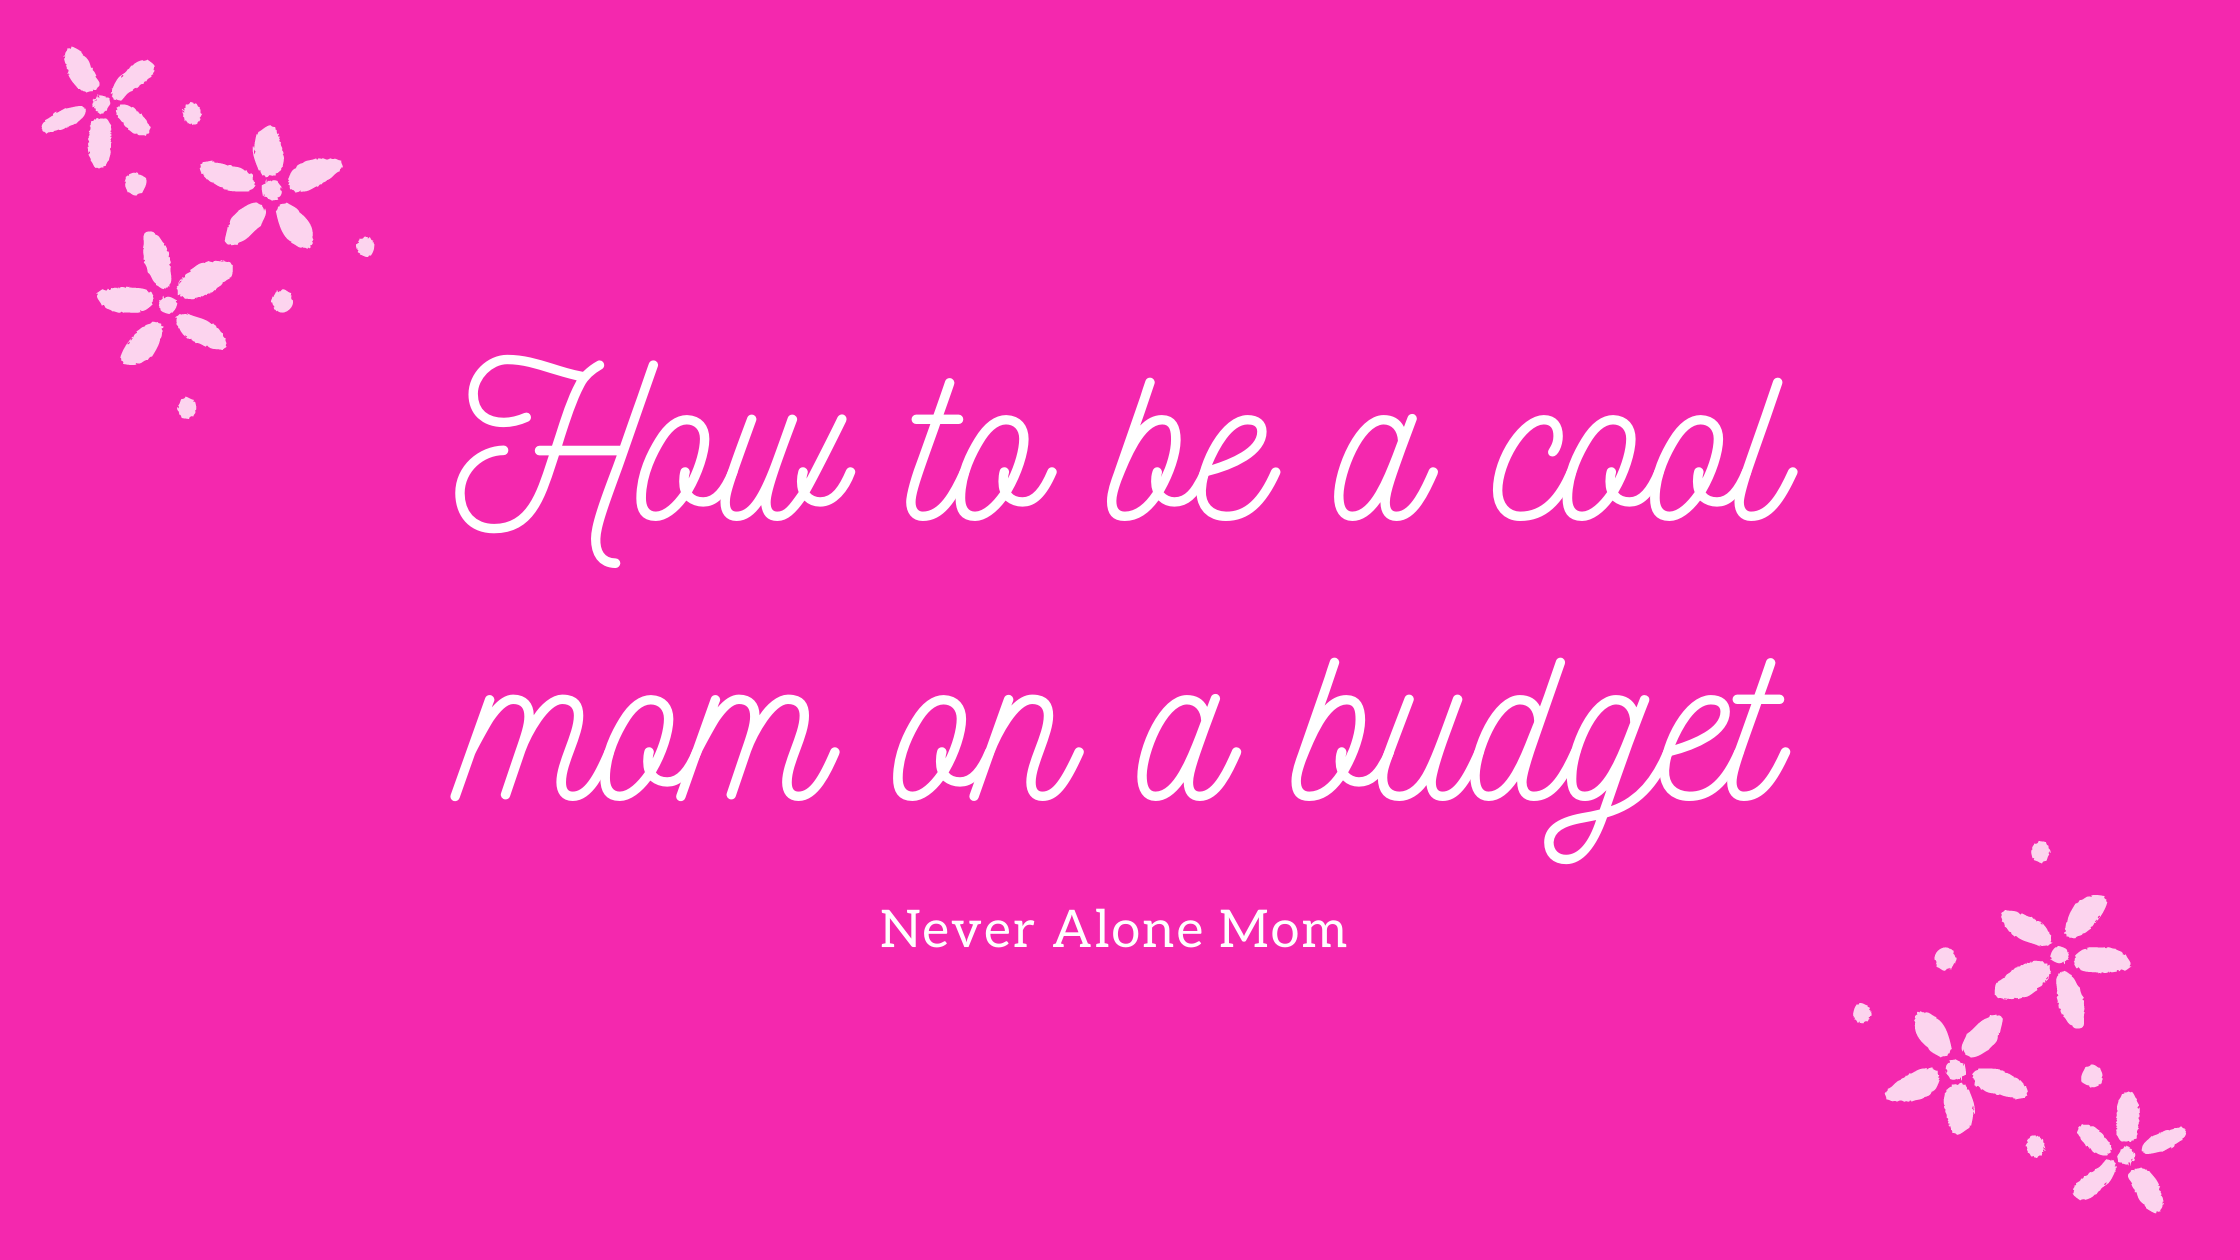 How to be a cool mom and save money |neveralonemom.com